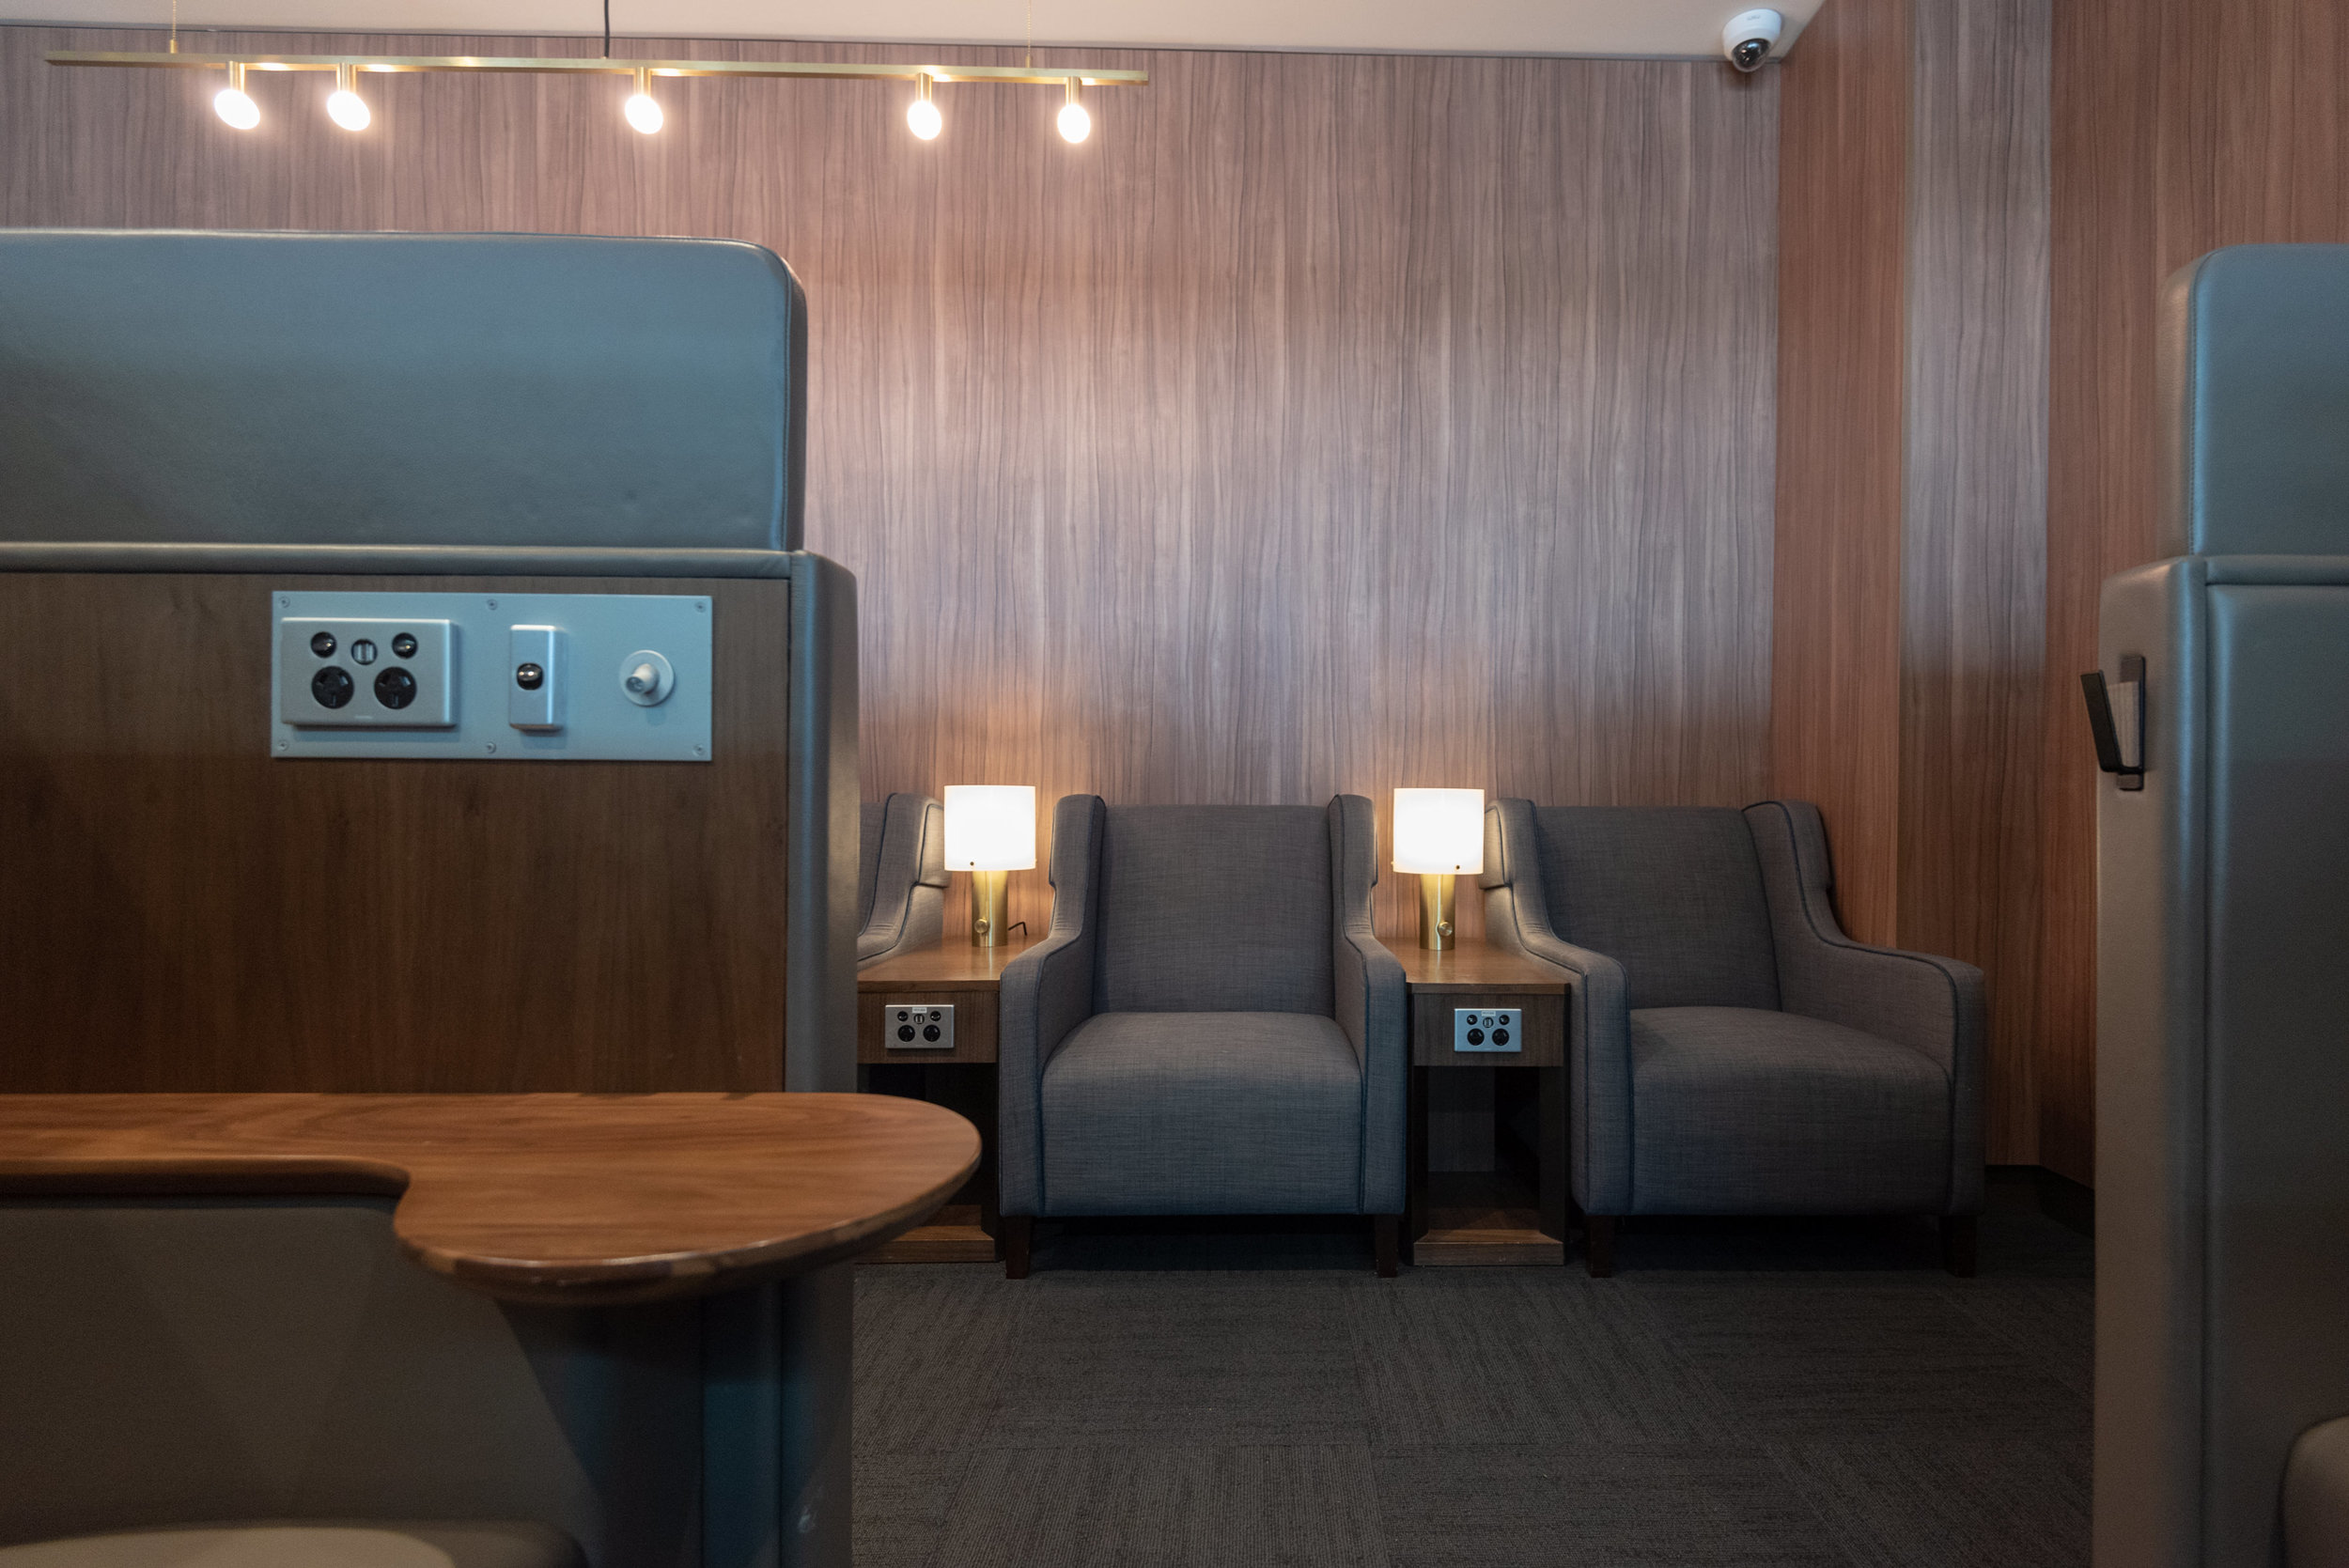 Lounge Chairs  Plaza Premium Lounge - Melbourne Airport (MEL)